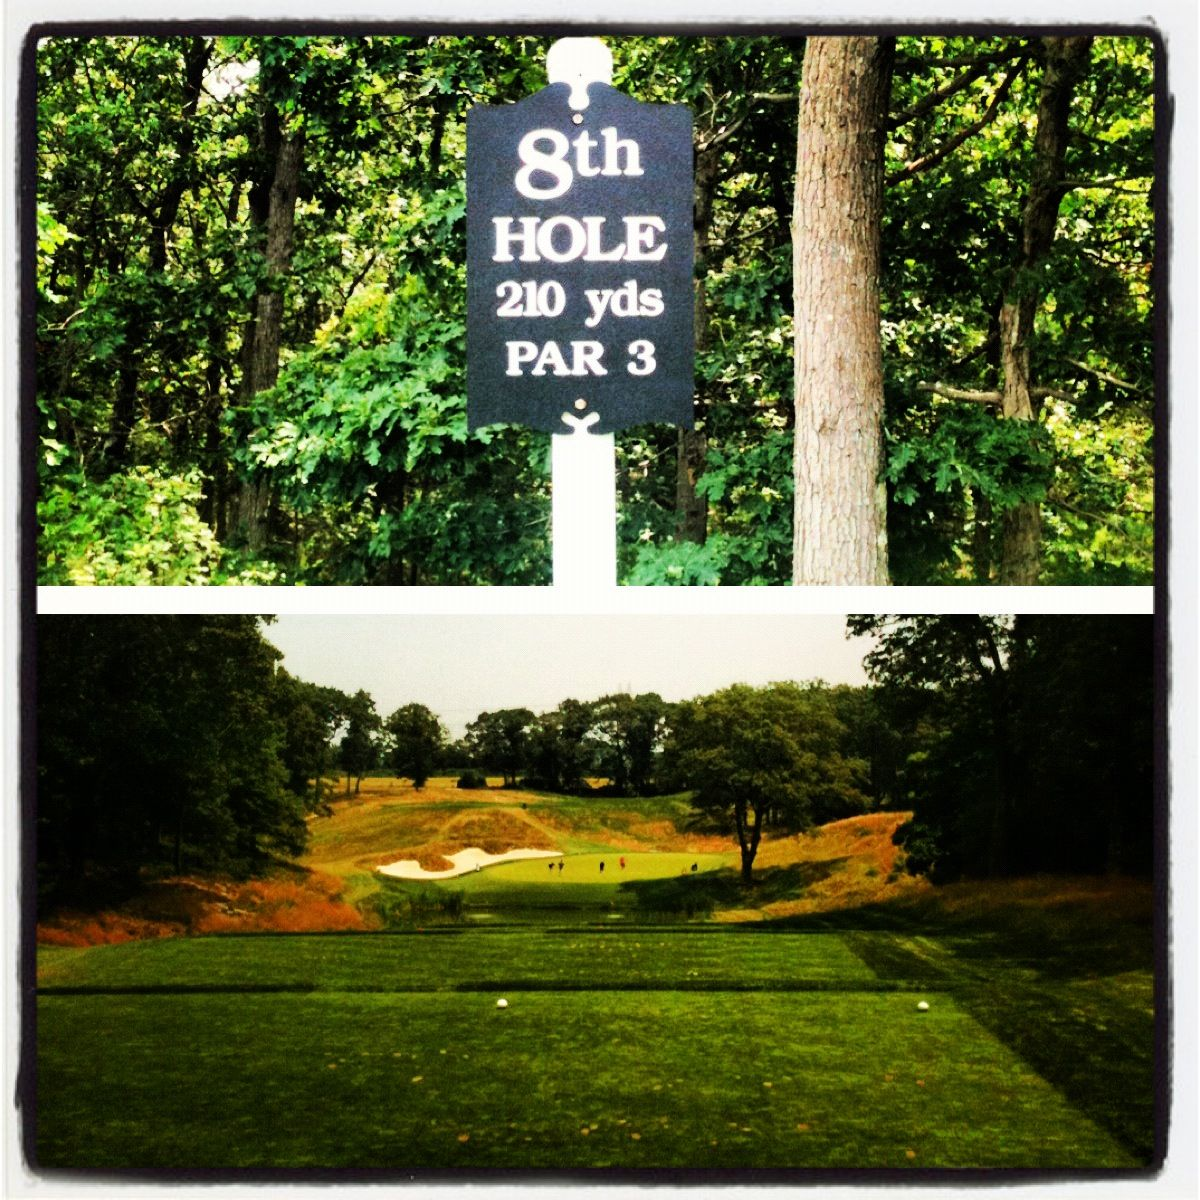 bethpage guys The world's best golfers are descending on long island when the barclays, a tournament on the pga tour, returns to the bethpage black course aug 23-28.